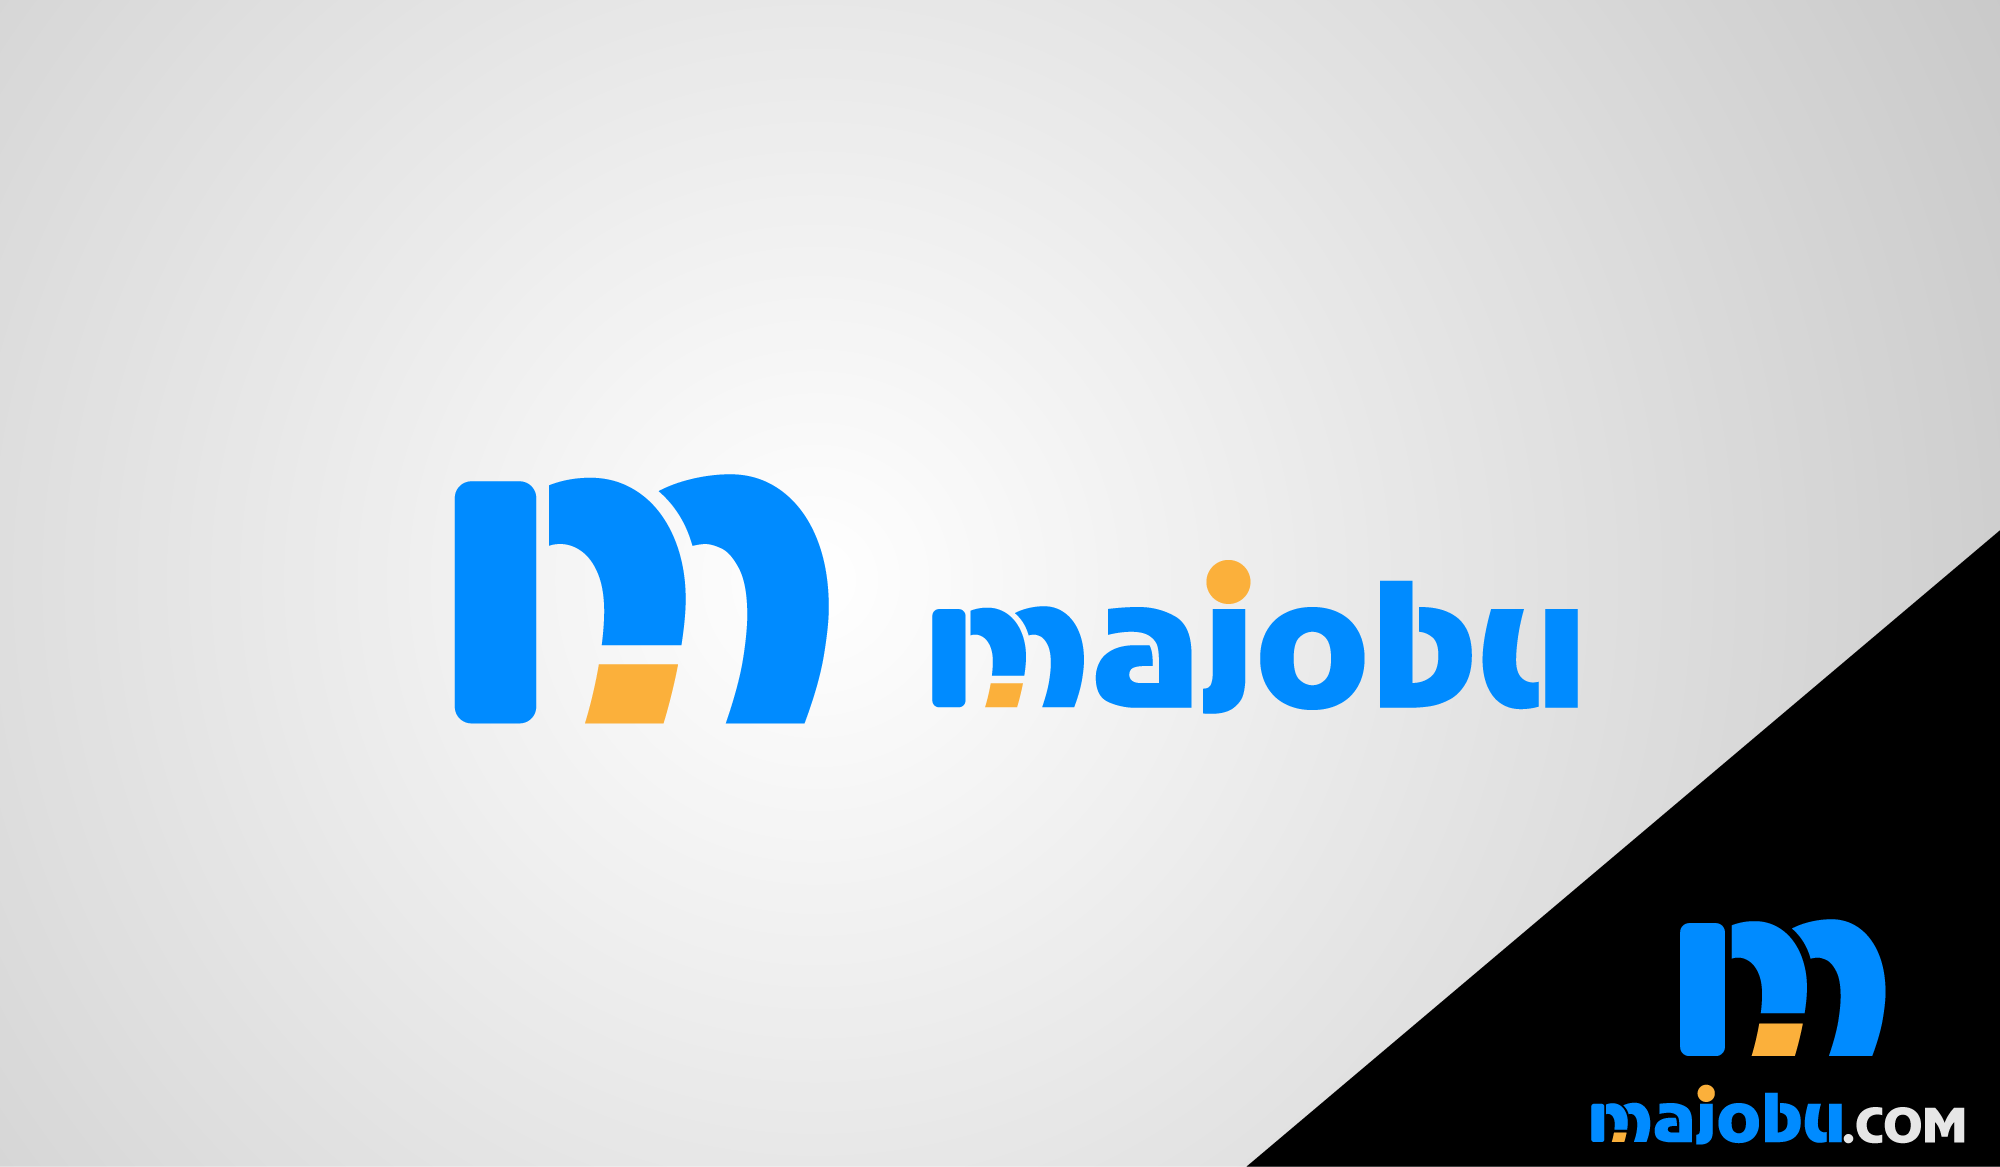 Logo Design by Private User - Entry No. 125 in the Logo Design Contest Inspiring Logo Design for Majobu.